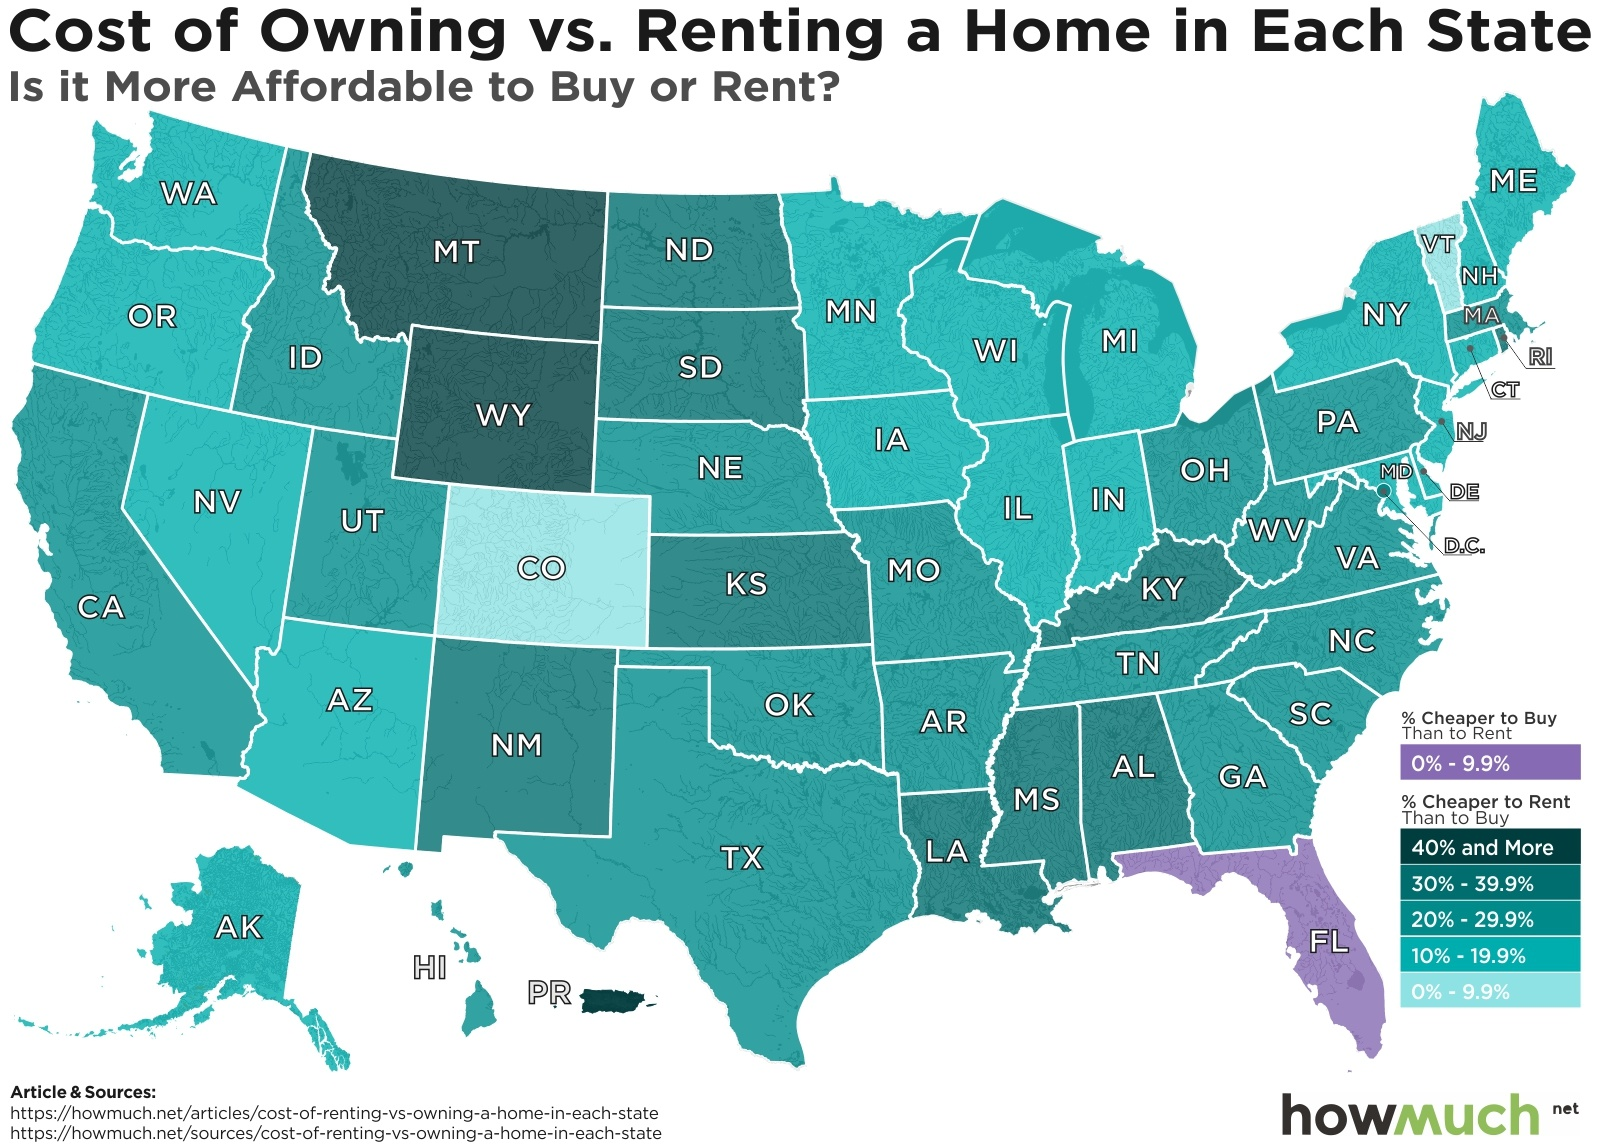 HowMuch.net Cost of Renting vs Buying a Home in Each State